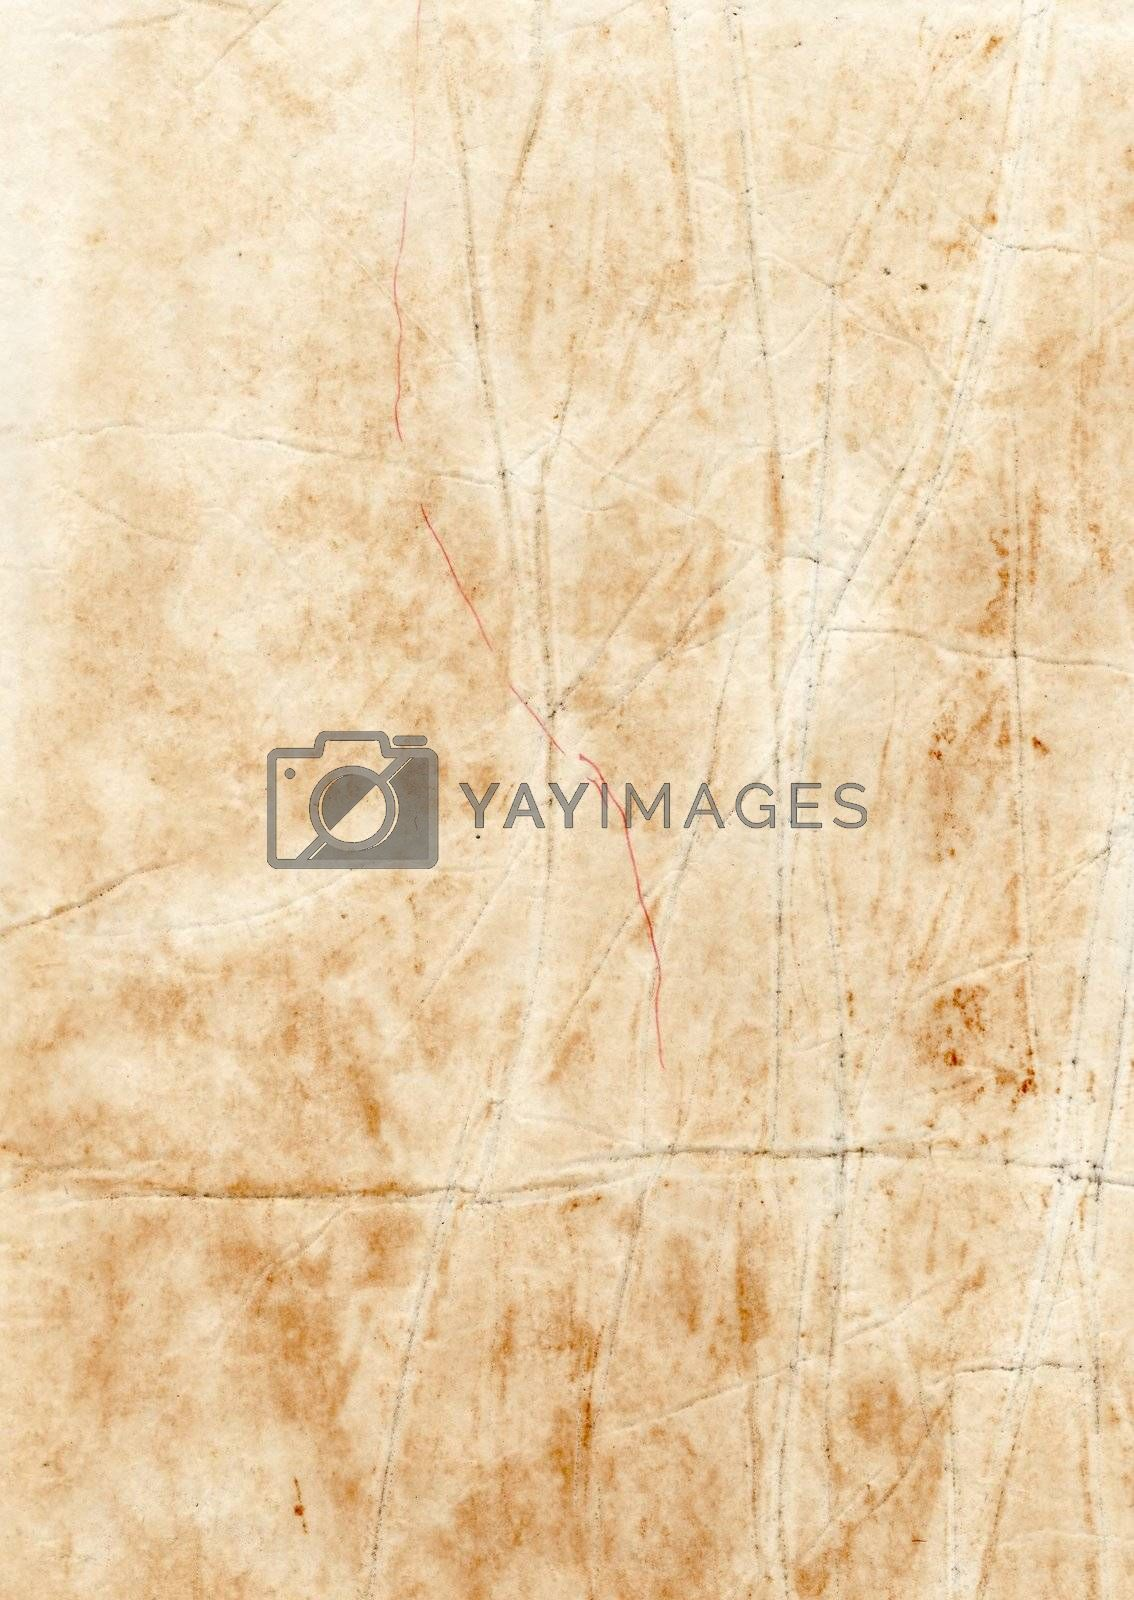 Old stained rugged dirty paper